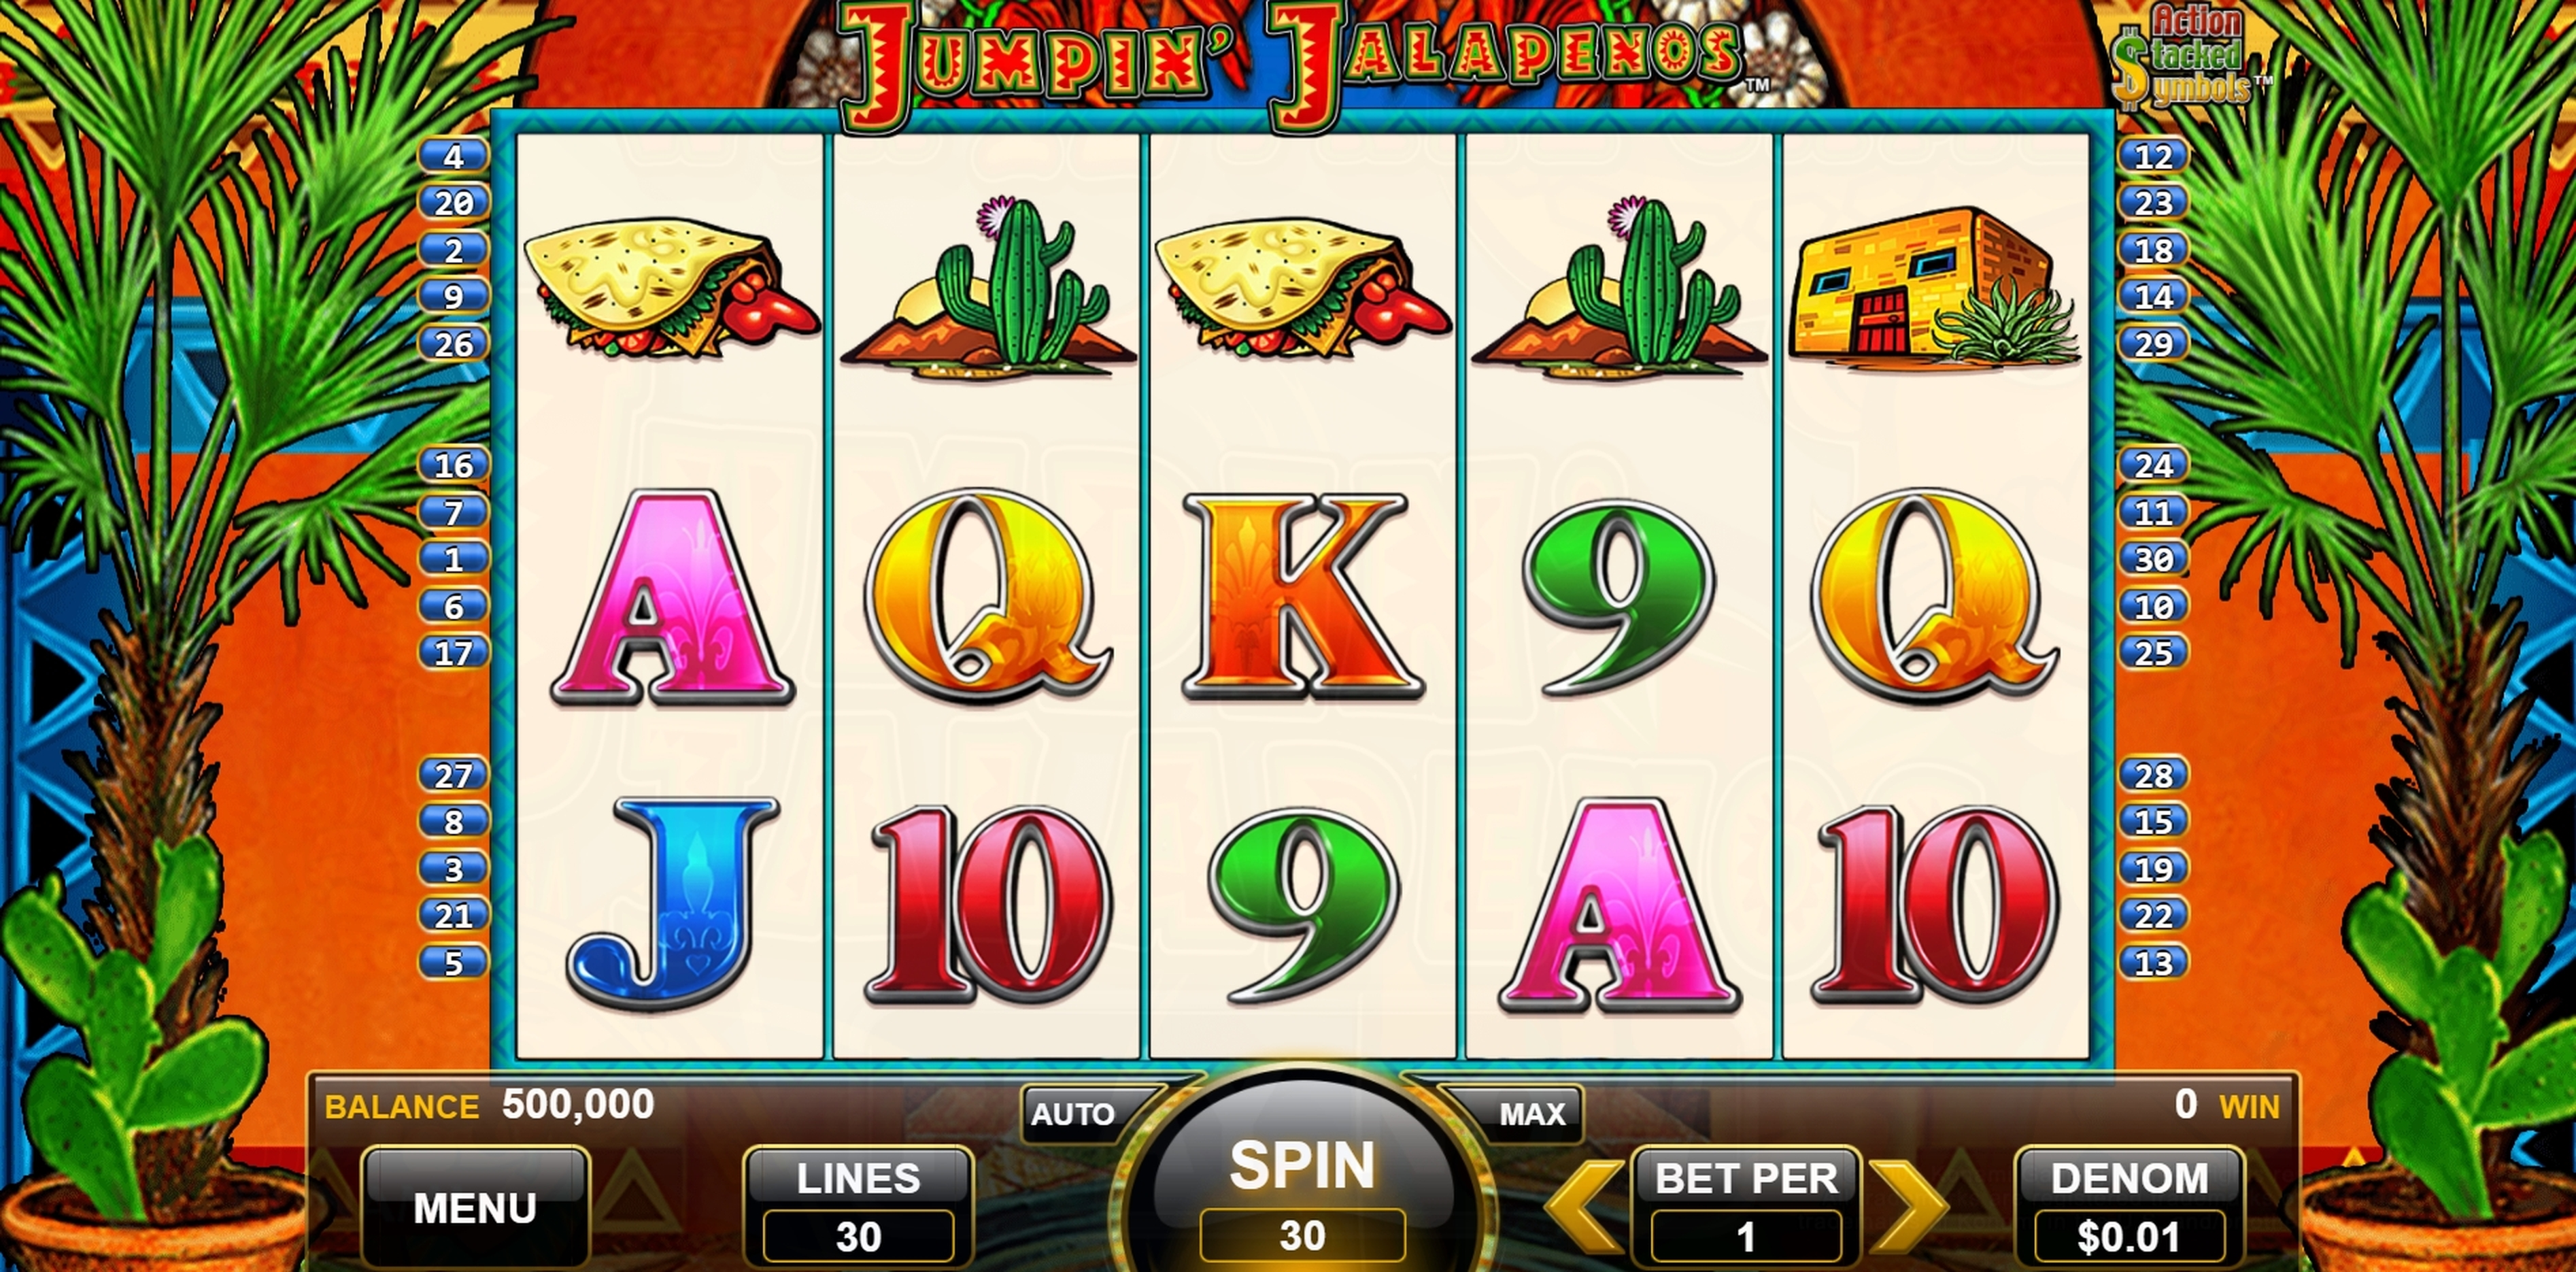 Reels in Jumpin Jalapenos Slot Game by WMS